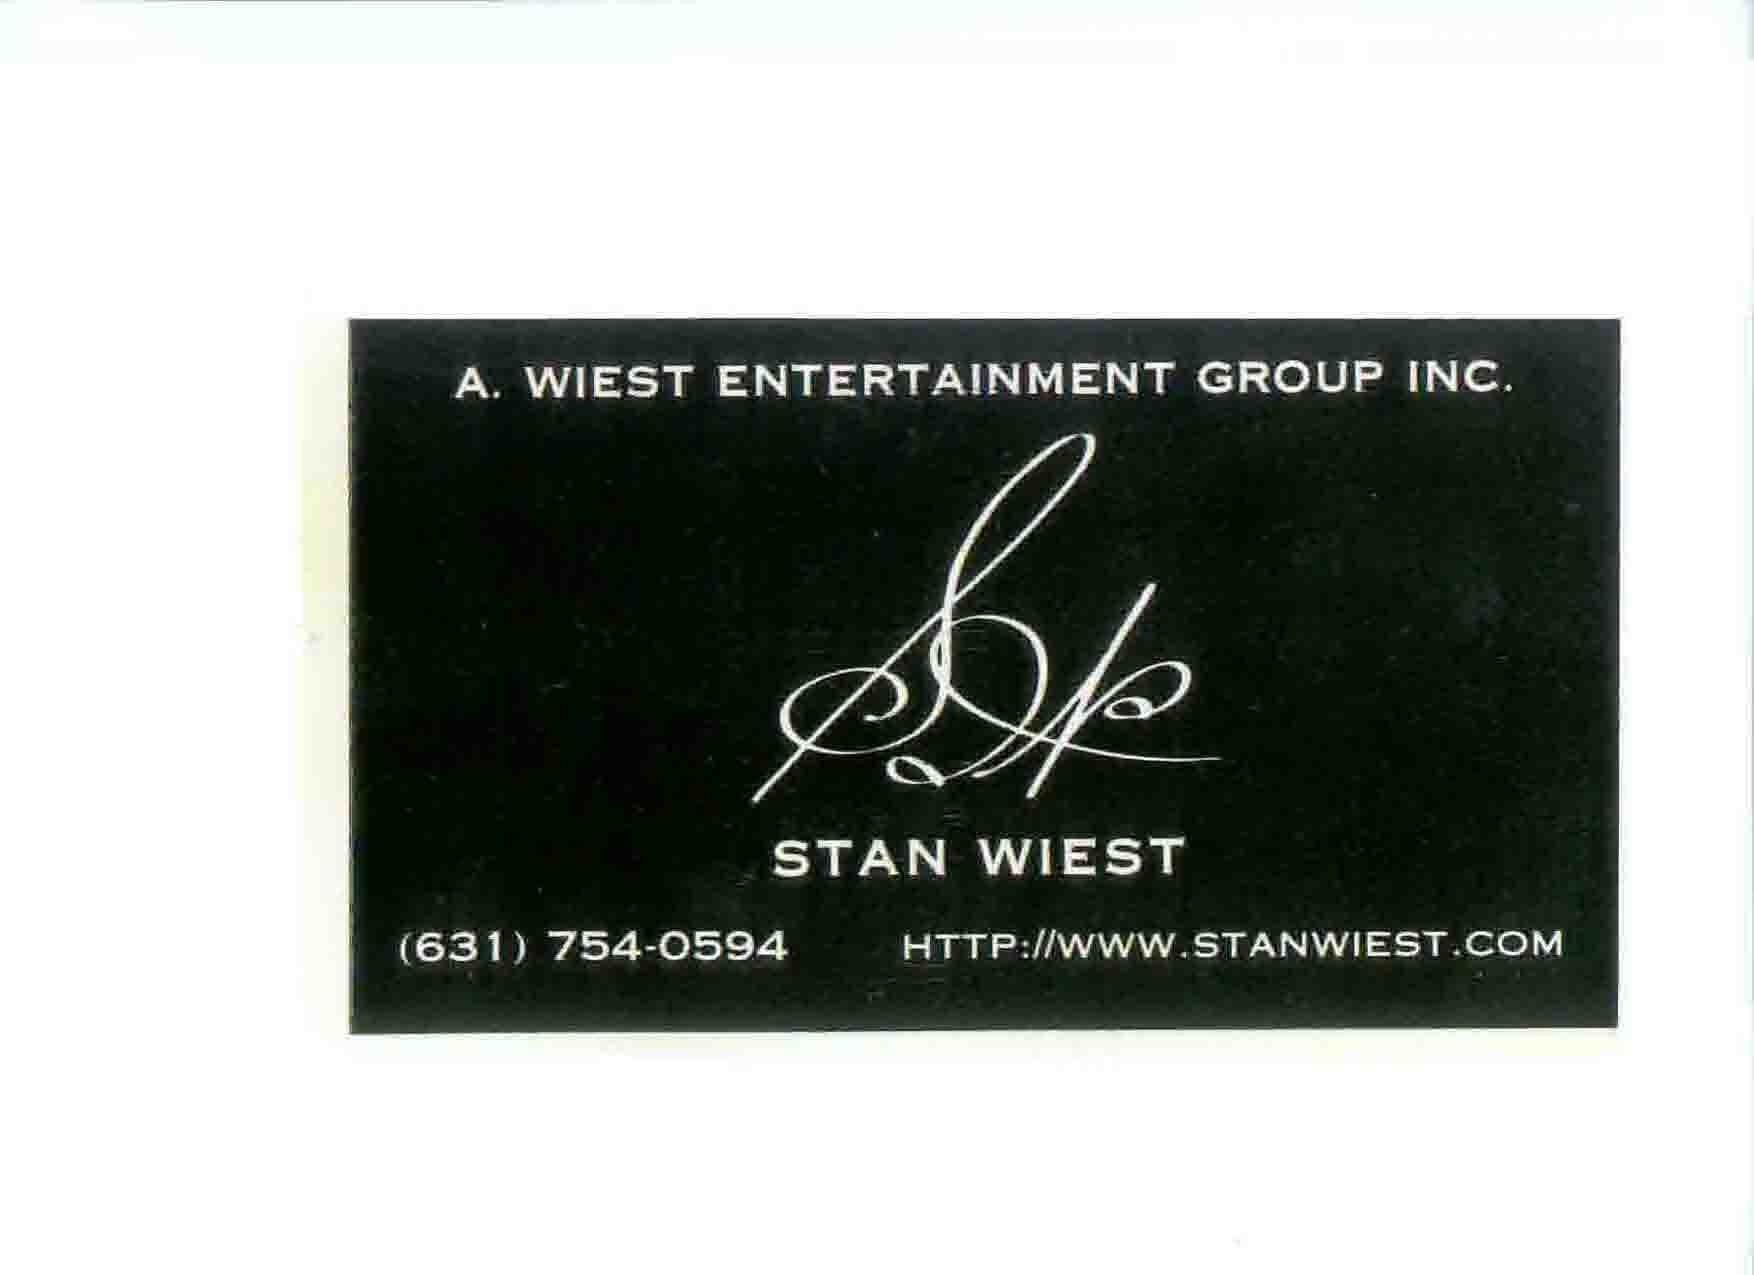 A stan wiest music business cards stan wiest music stan wiest logoedited 1 stan wiest music business cards reheart Image collections